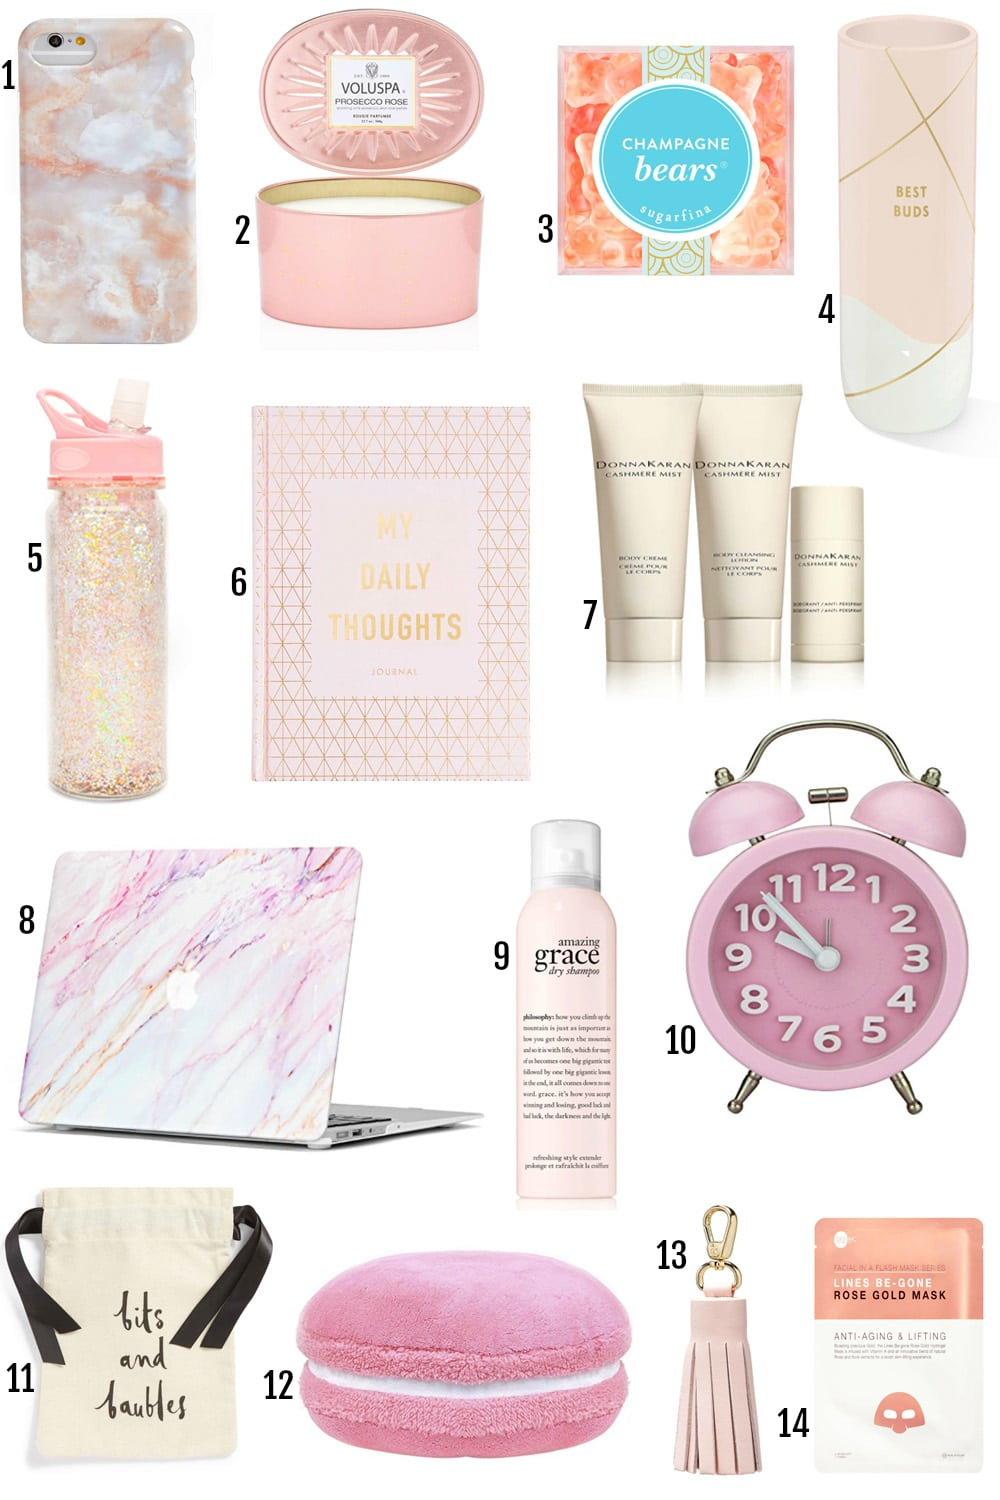 The BEST Gifts For Her Under $25 by popular Orlando style blogger Mash Elle